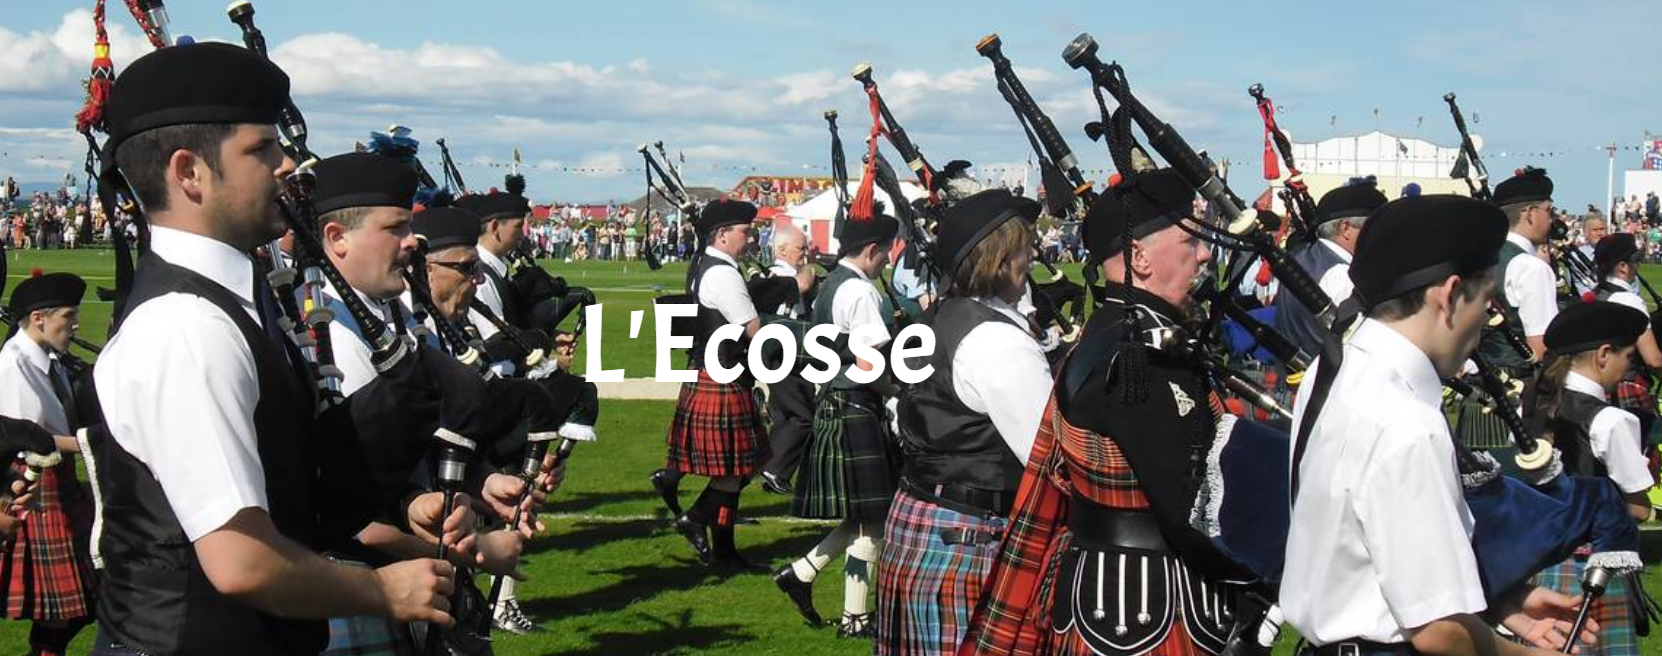 Highand Games Ecosse